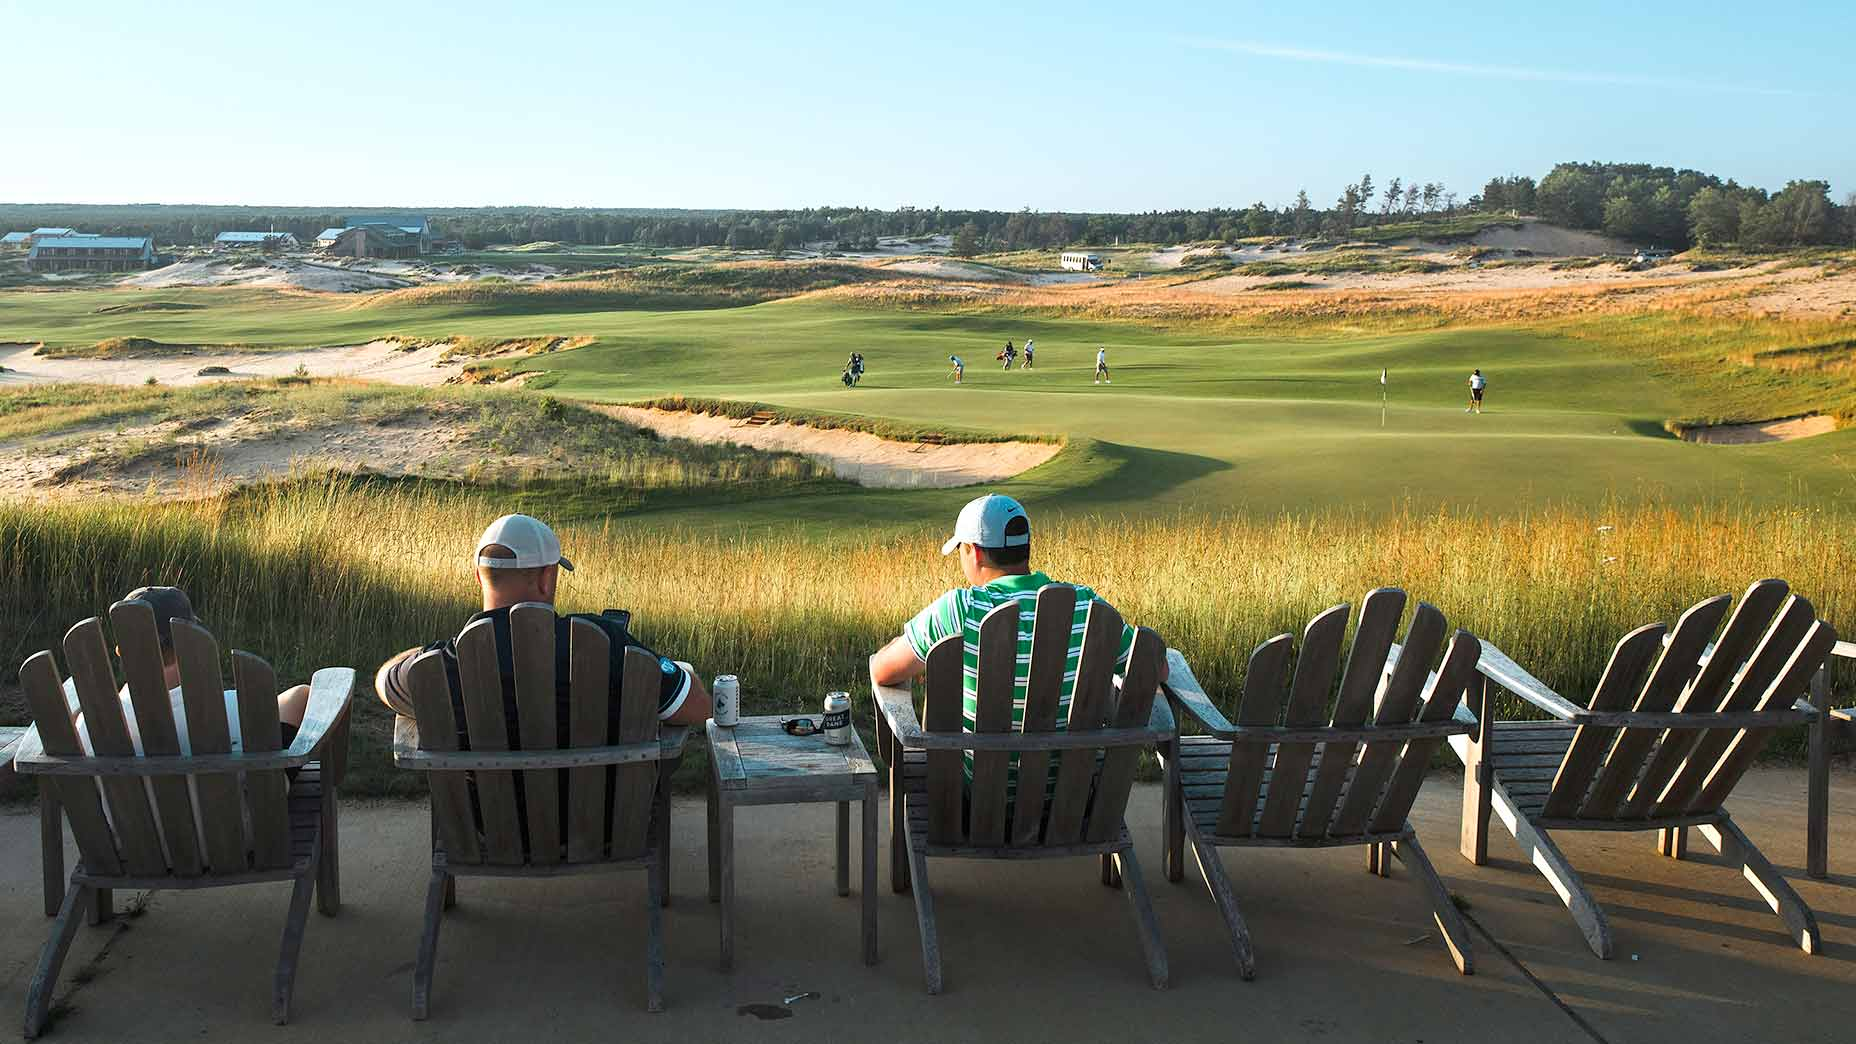 A road trip to Sand Valley (or anywhere!) with your crew creates lifelong memories.